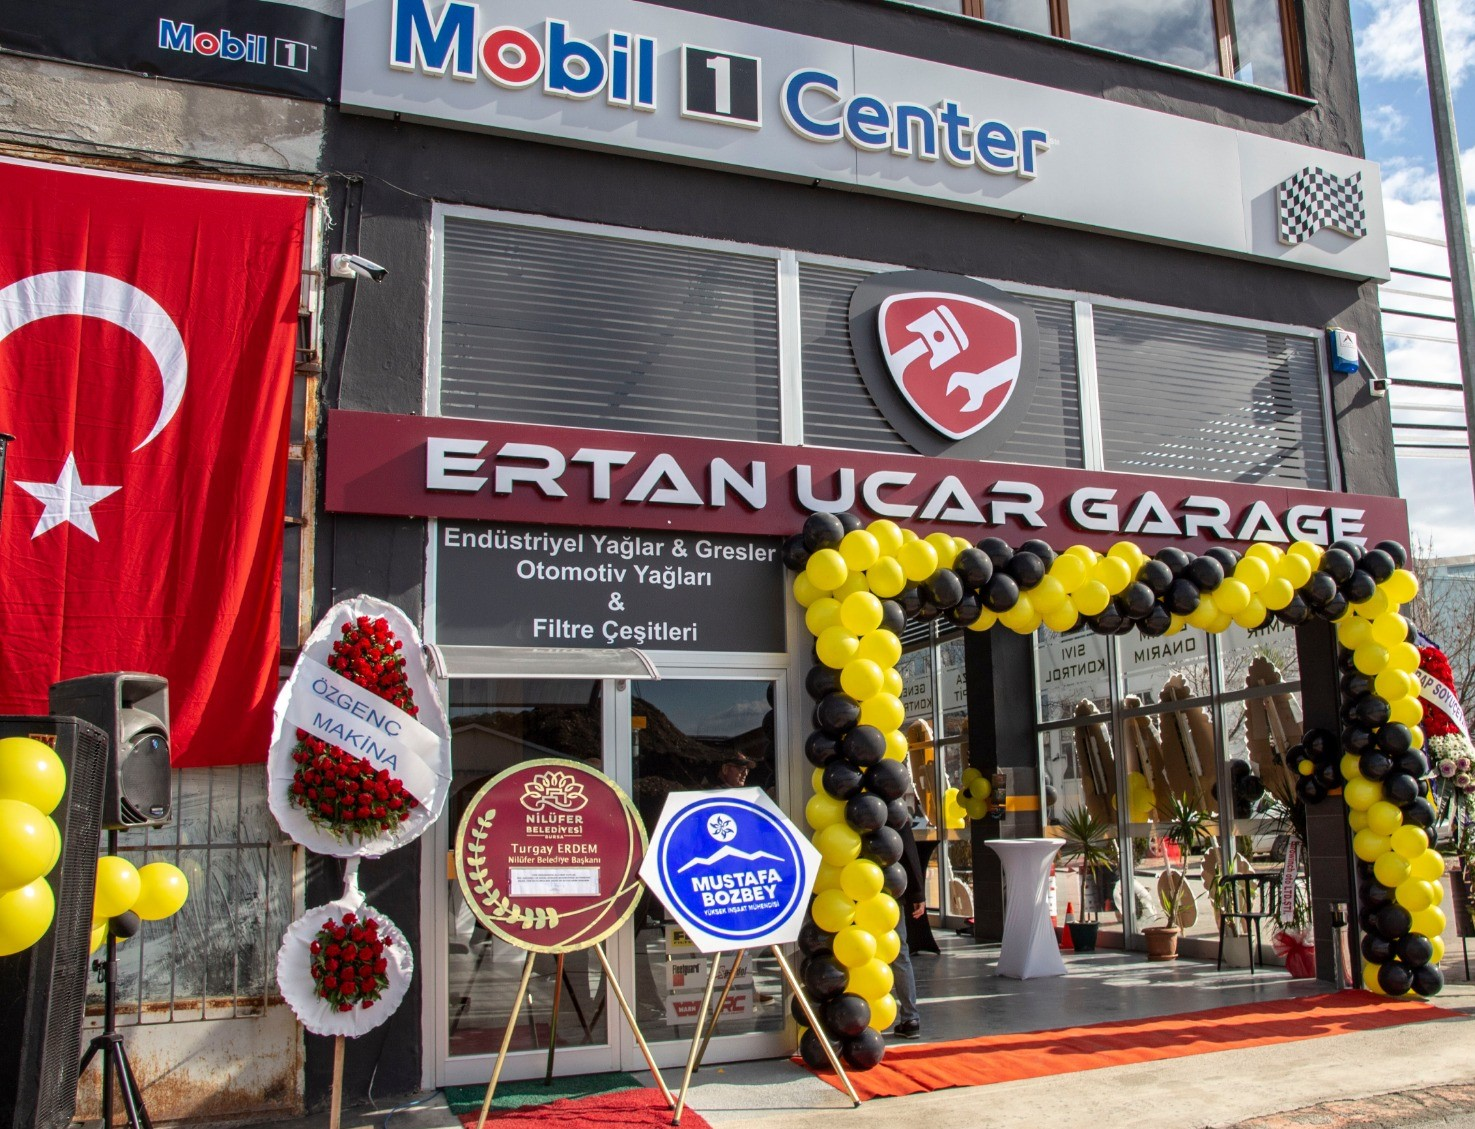 mobil-1-center---bursa.jpg